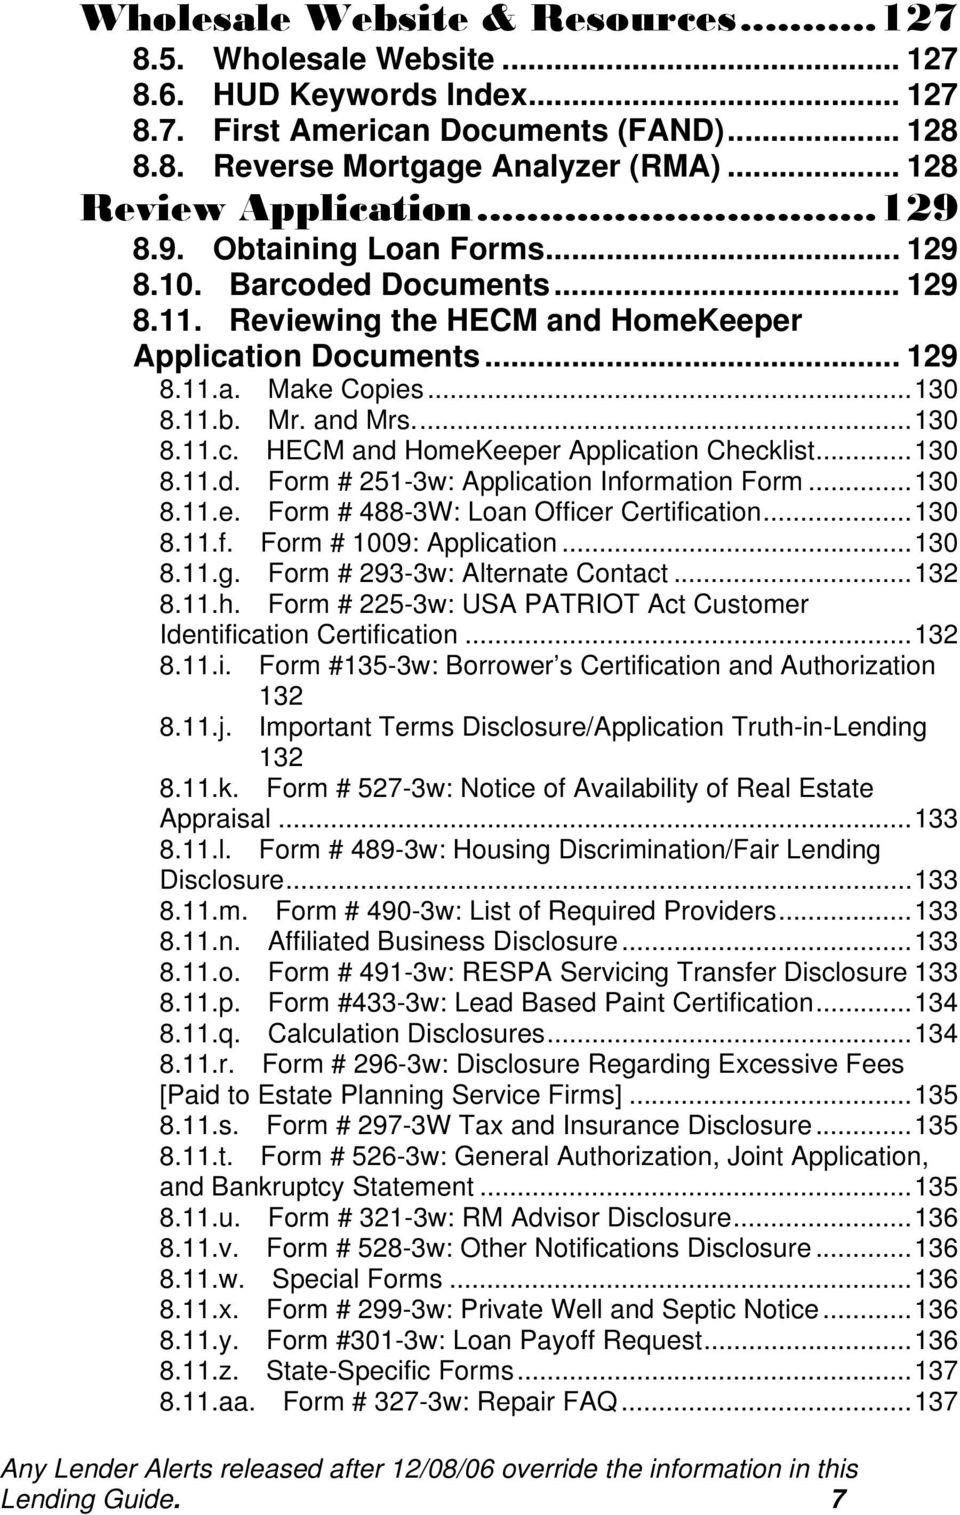 and Mrs...130 8.11.c. HECM and HomeKeeper Application Checklist...130 8.11.d. Form # 251-3w: Application Information Form...130 8.11.e. Form # 488-3W: Loan Officer Certification...130 8.11.f. Form # 1009: Application.